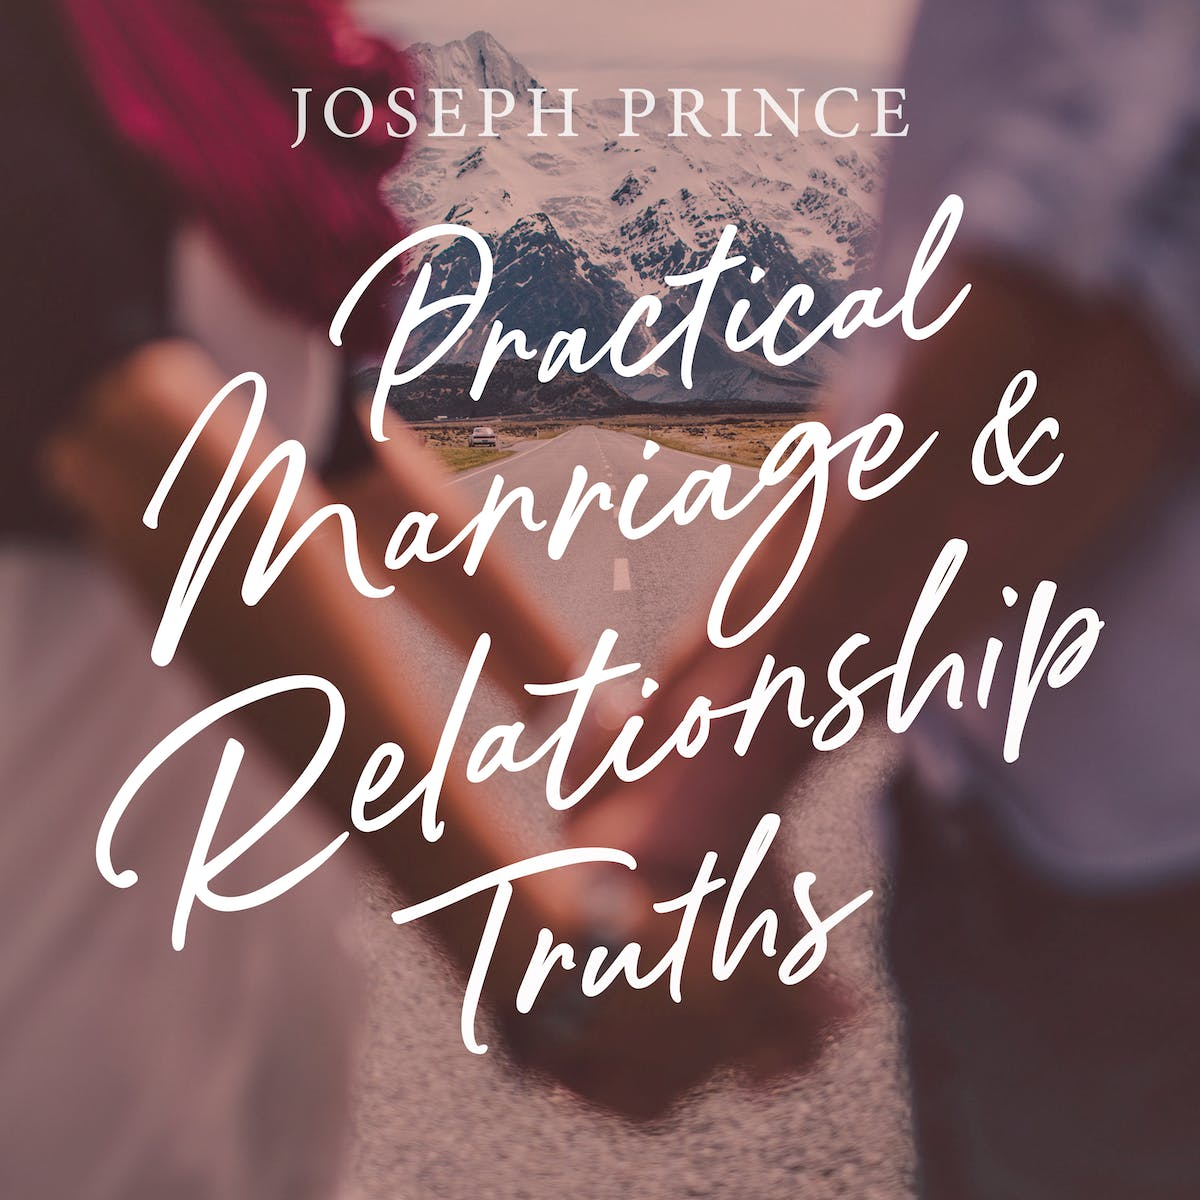 Practical Marriage And Relationship Truths | Official Joseph